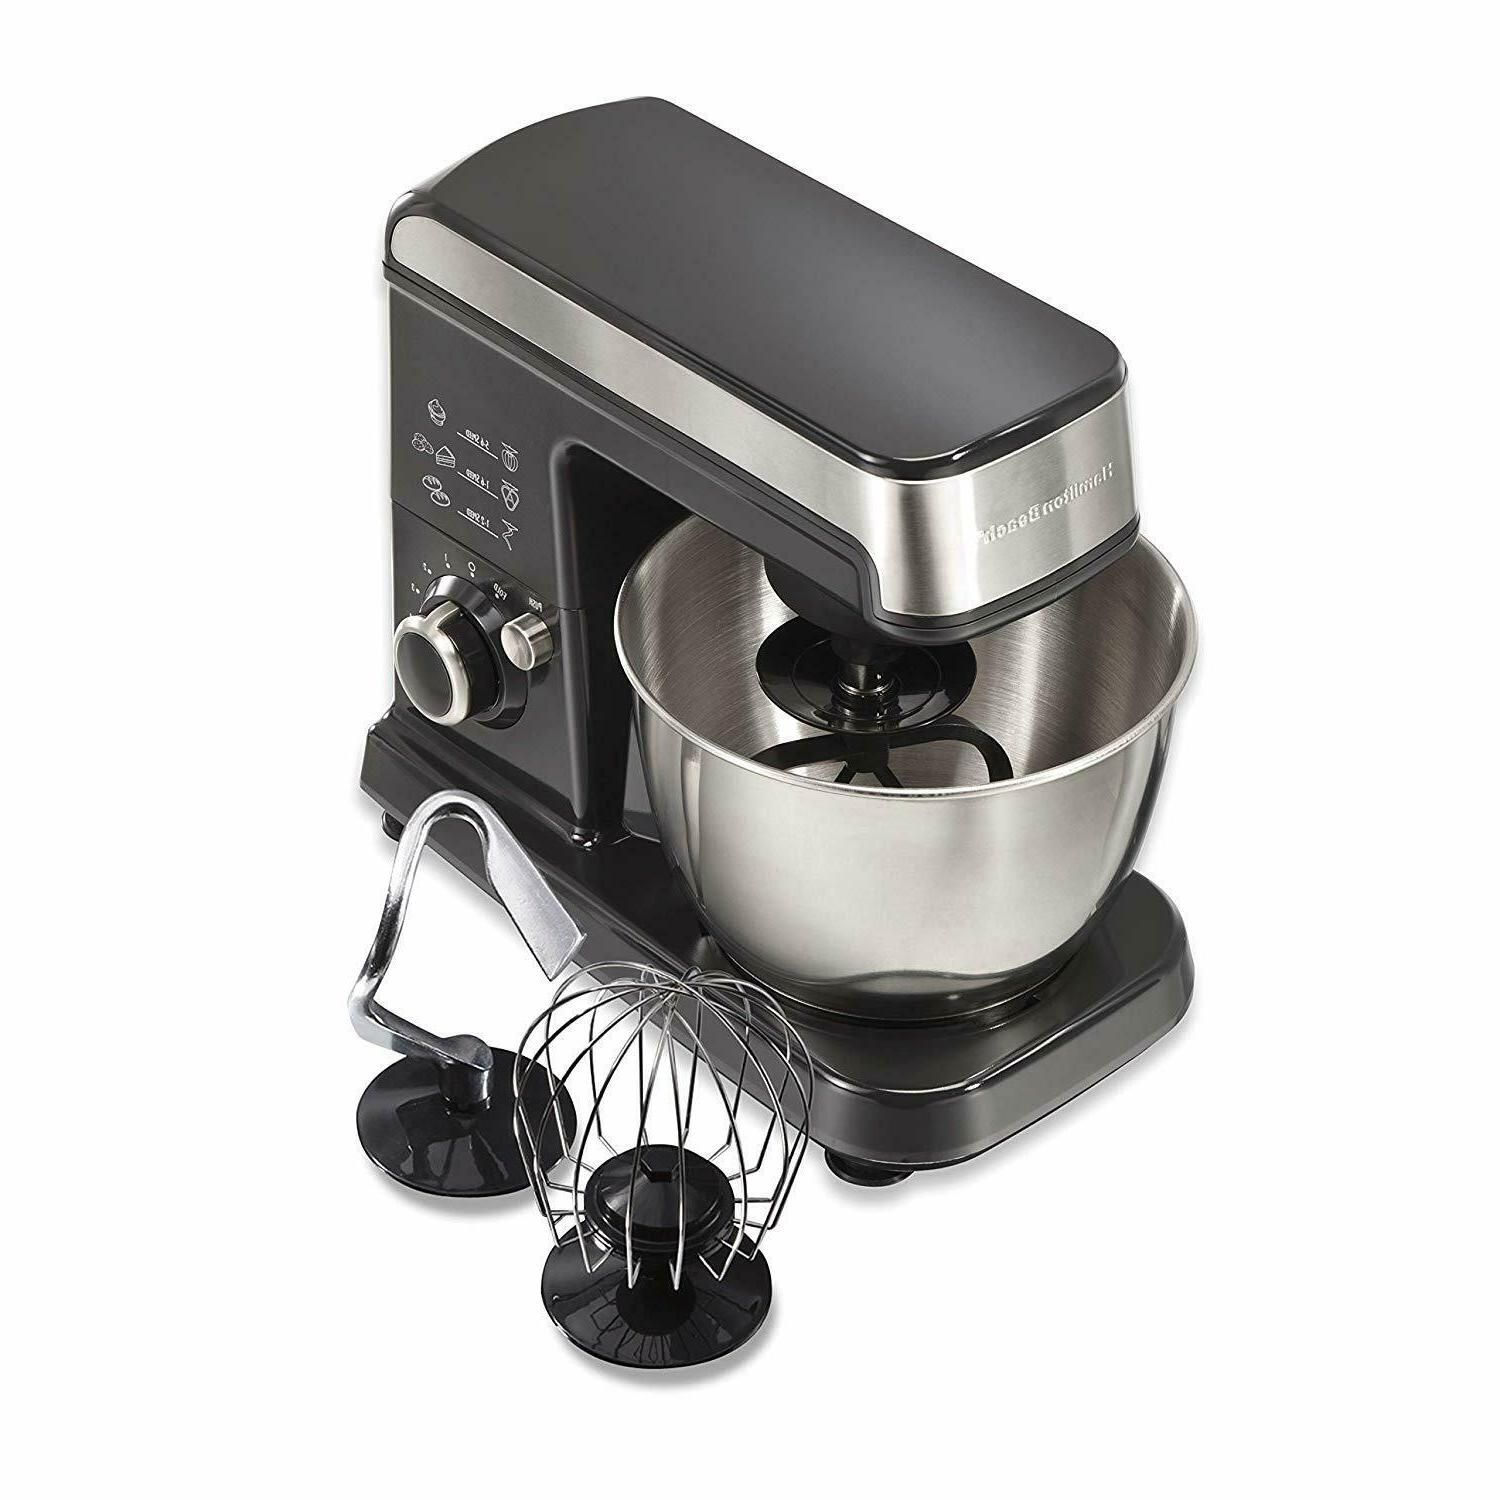 Stand Mixer Machine Maker Bakery Beater Dough Bowl Baking Co